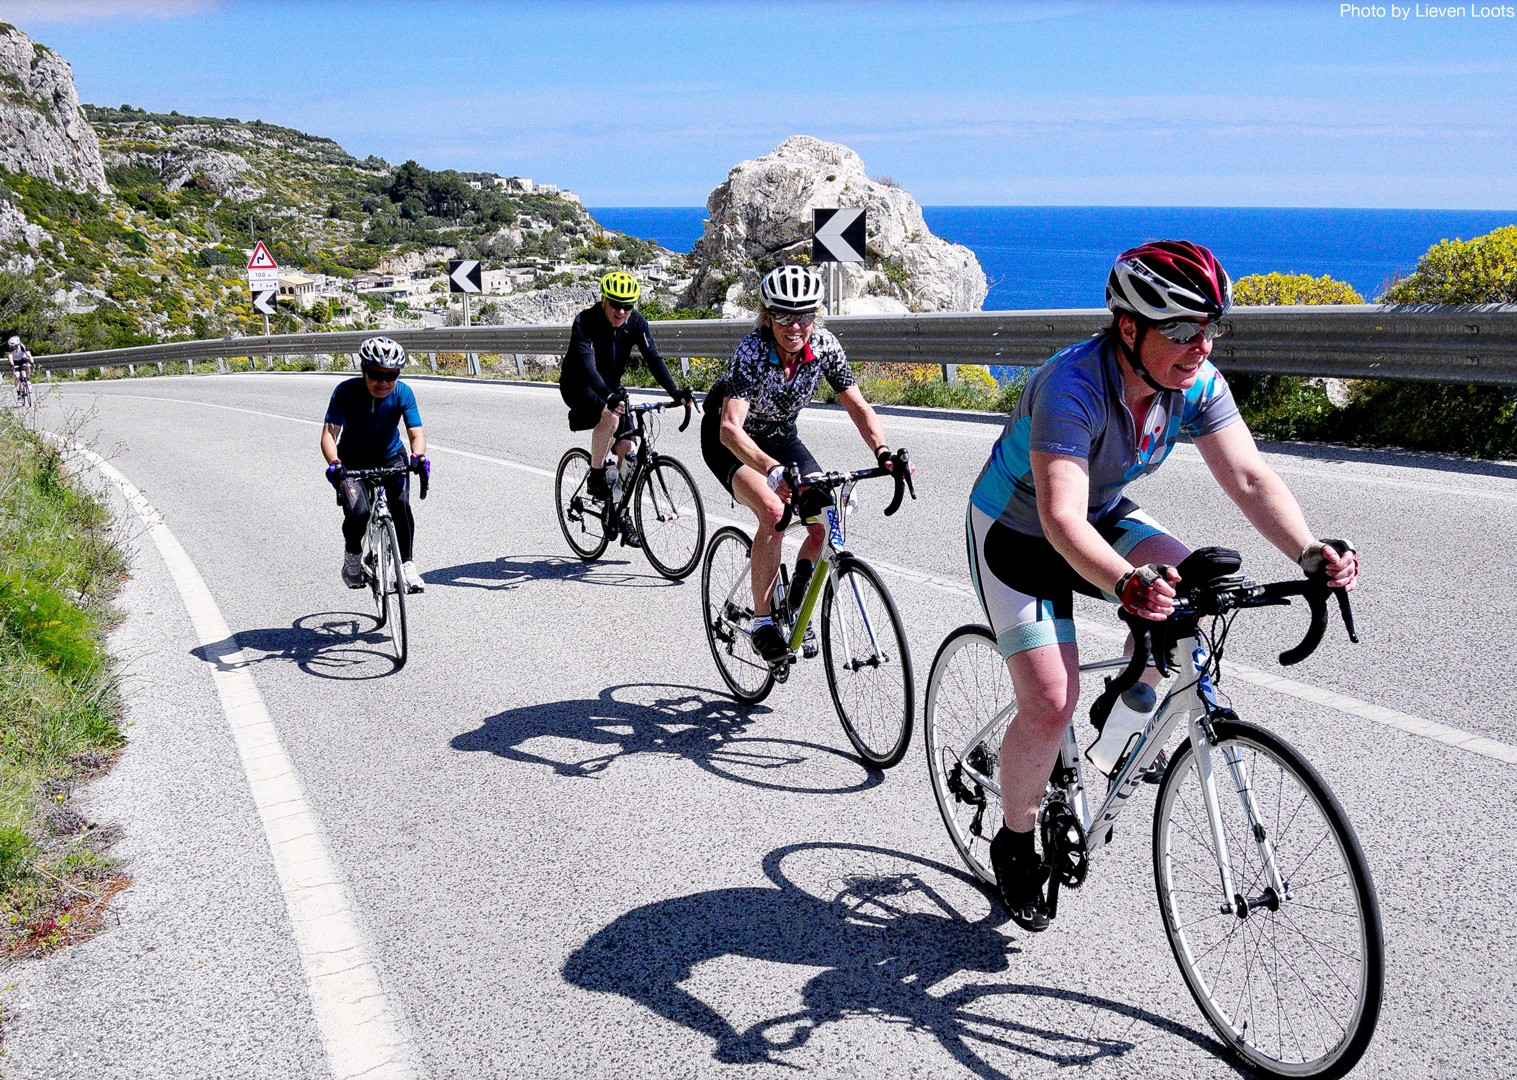 group-cycling-holiday-puglia-italy.jpg - Italy - Puglia - The Beautiful South - Guided Road Cycling Holiday - Road Cycling